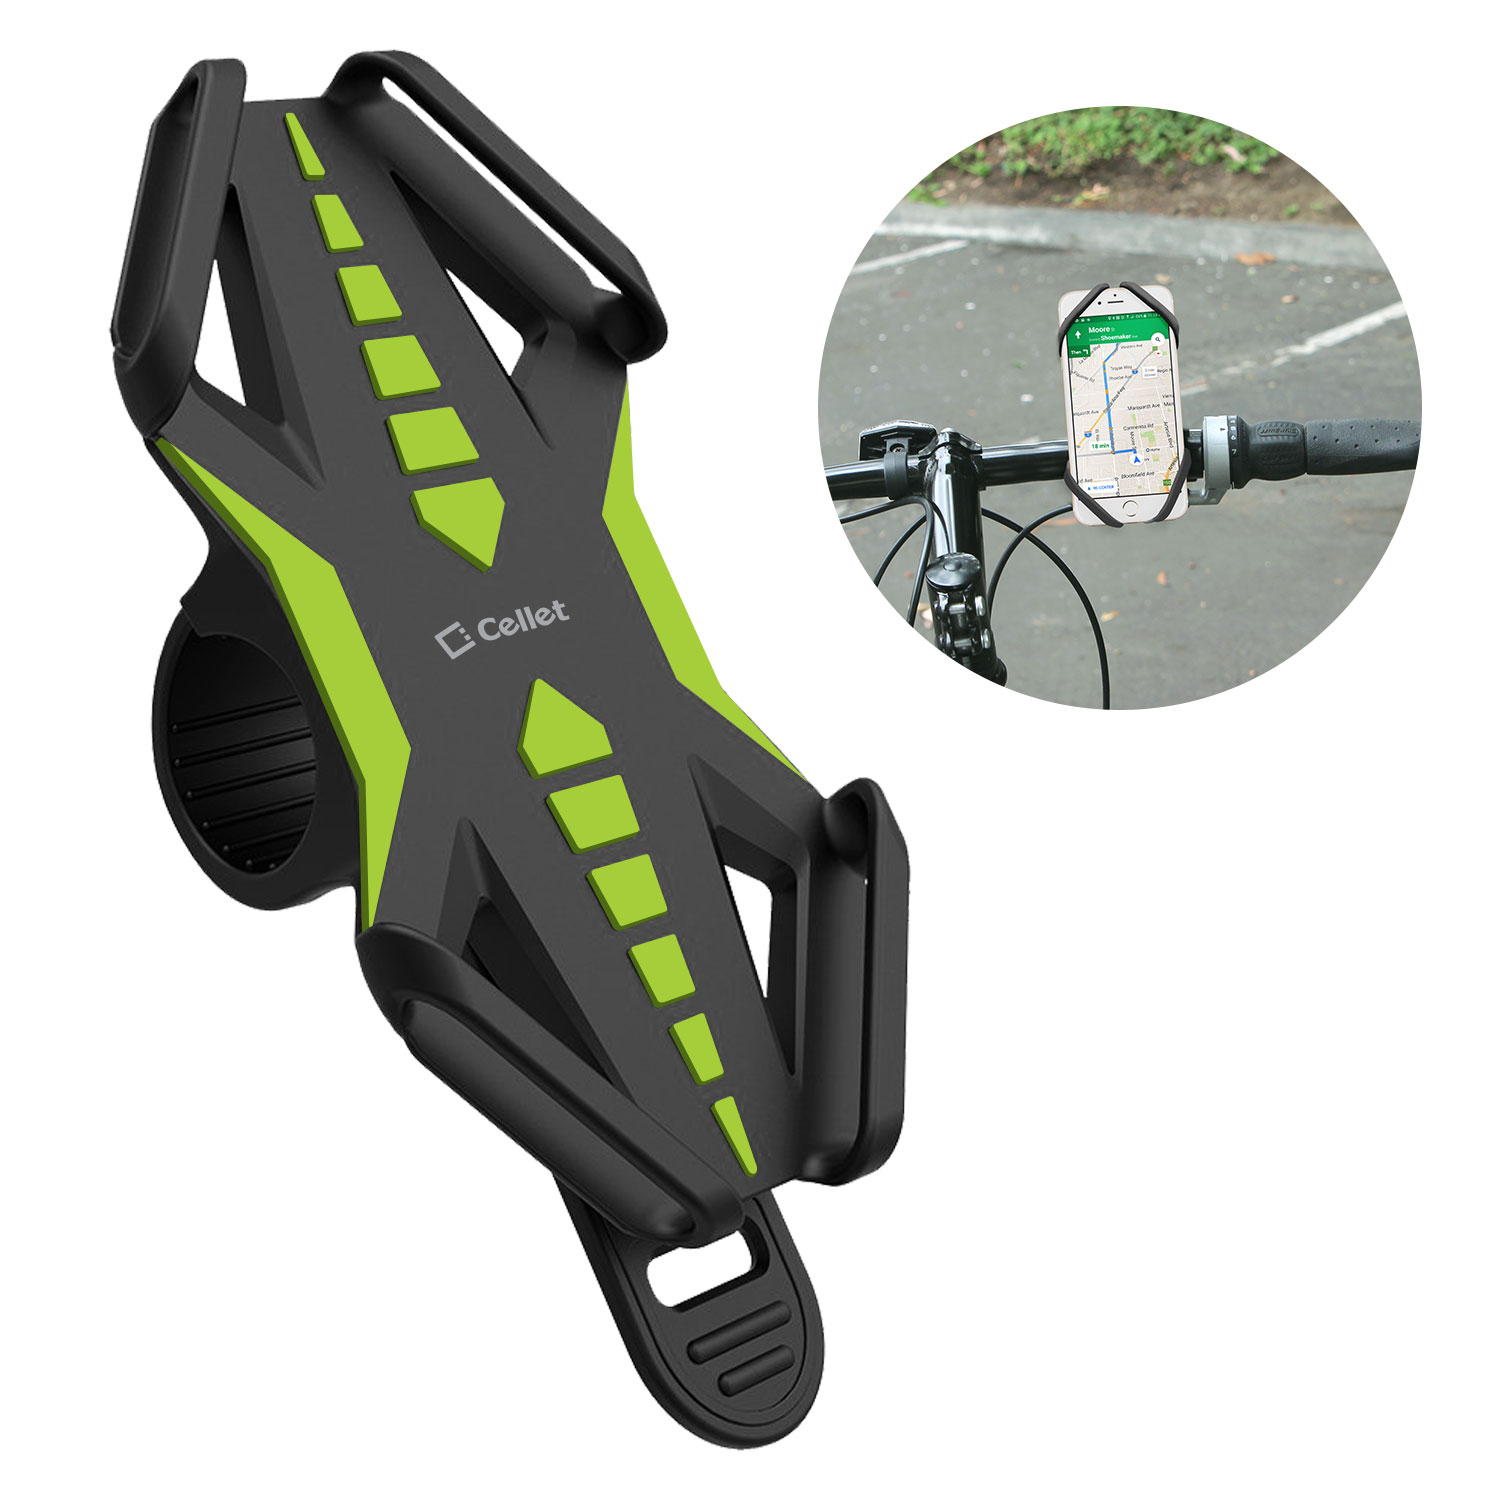 LG Spectrum Bike Phone Mount Silicone Green